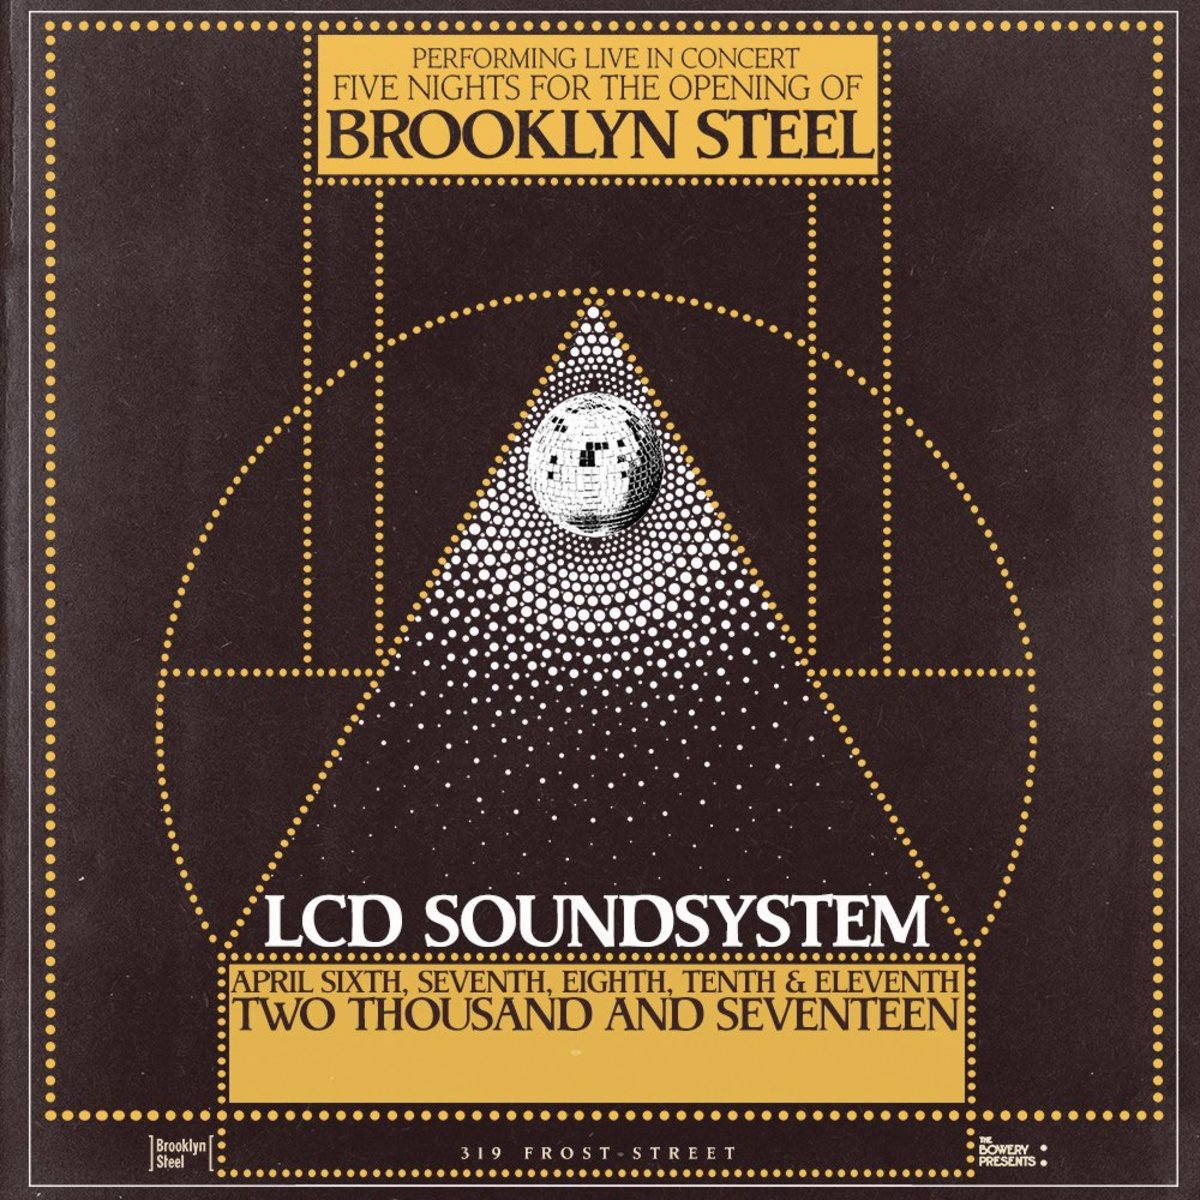 LCD Soundsystem - Brooklyn Steel flyer